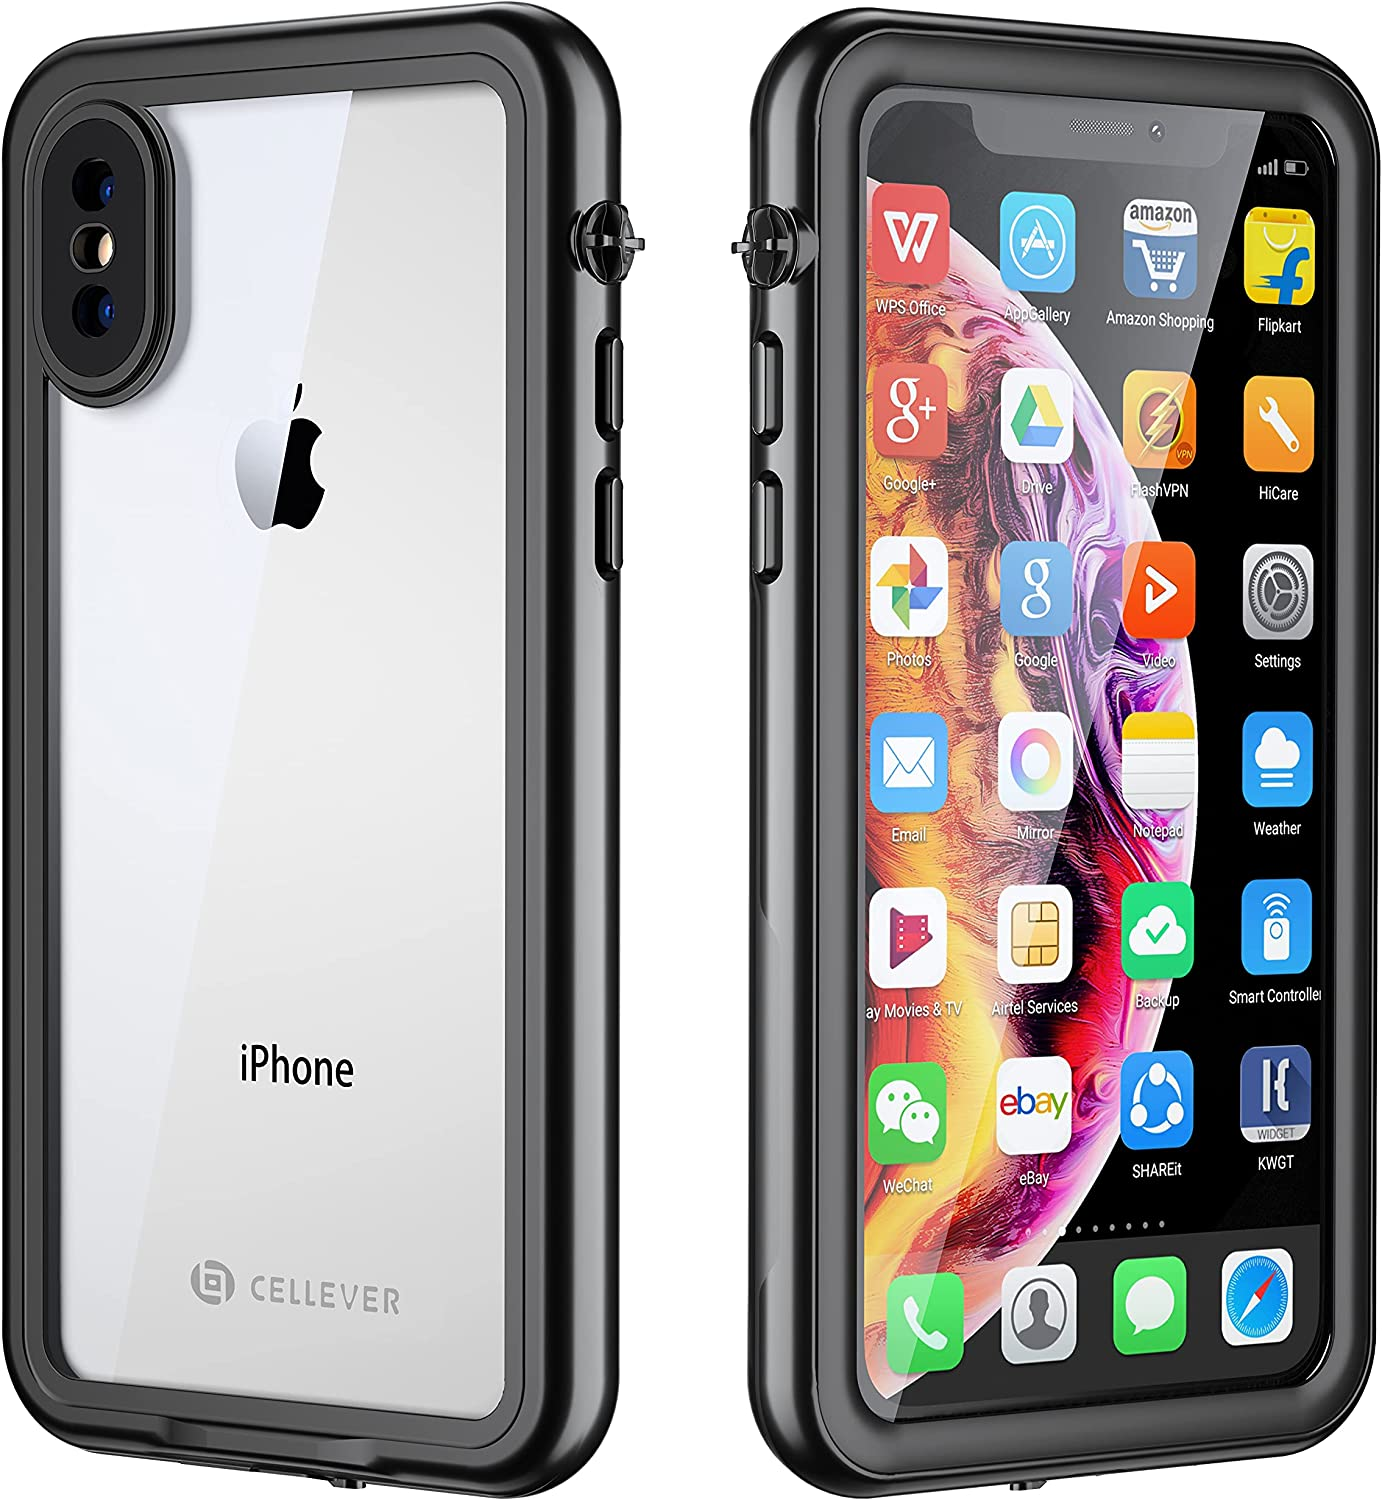 CellEver Compatible with iPhone Xs/iPhone X Waterproof Case Fully Sealed Clear Slim Military Grade Protection IP68 Certified SandProof Snowproof Full Body Protective Transparent Cover (Black)